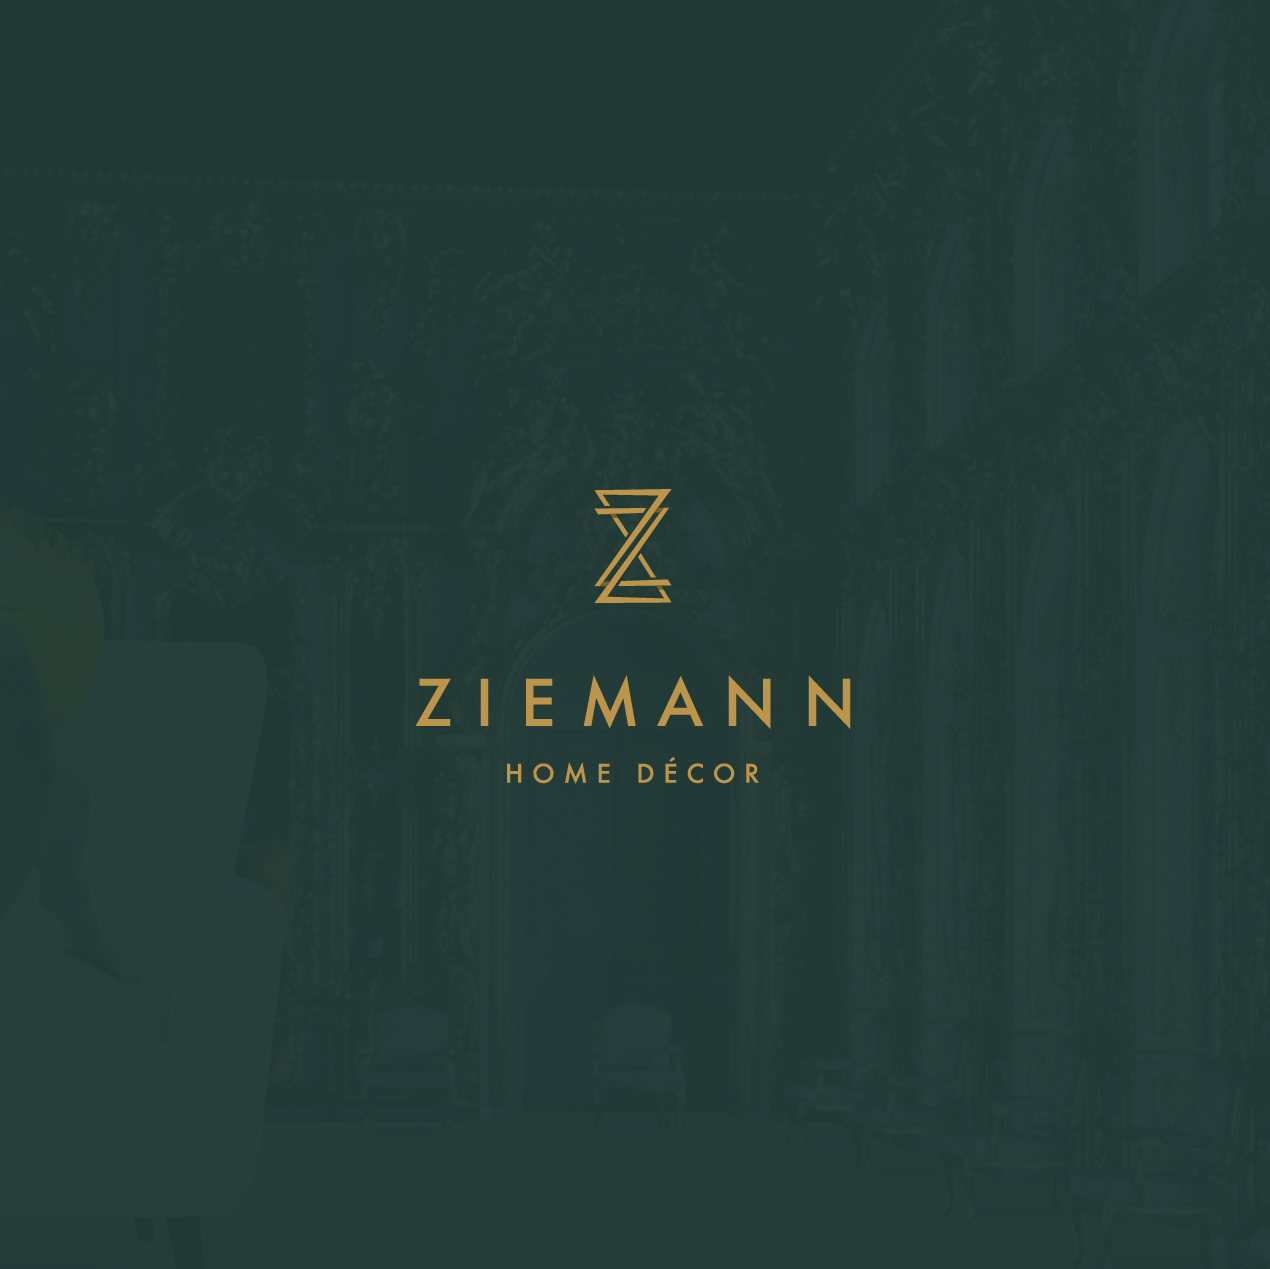 Ziemann home decor logo project